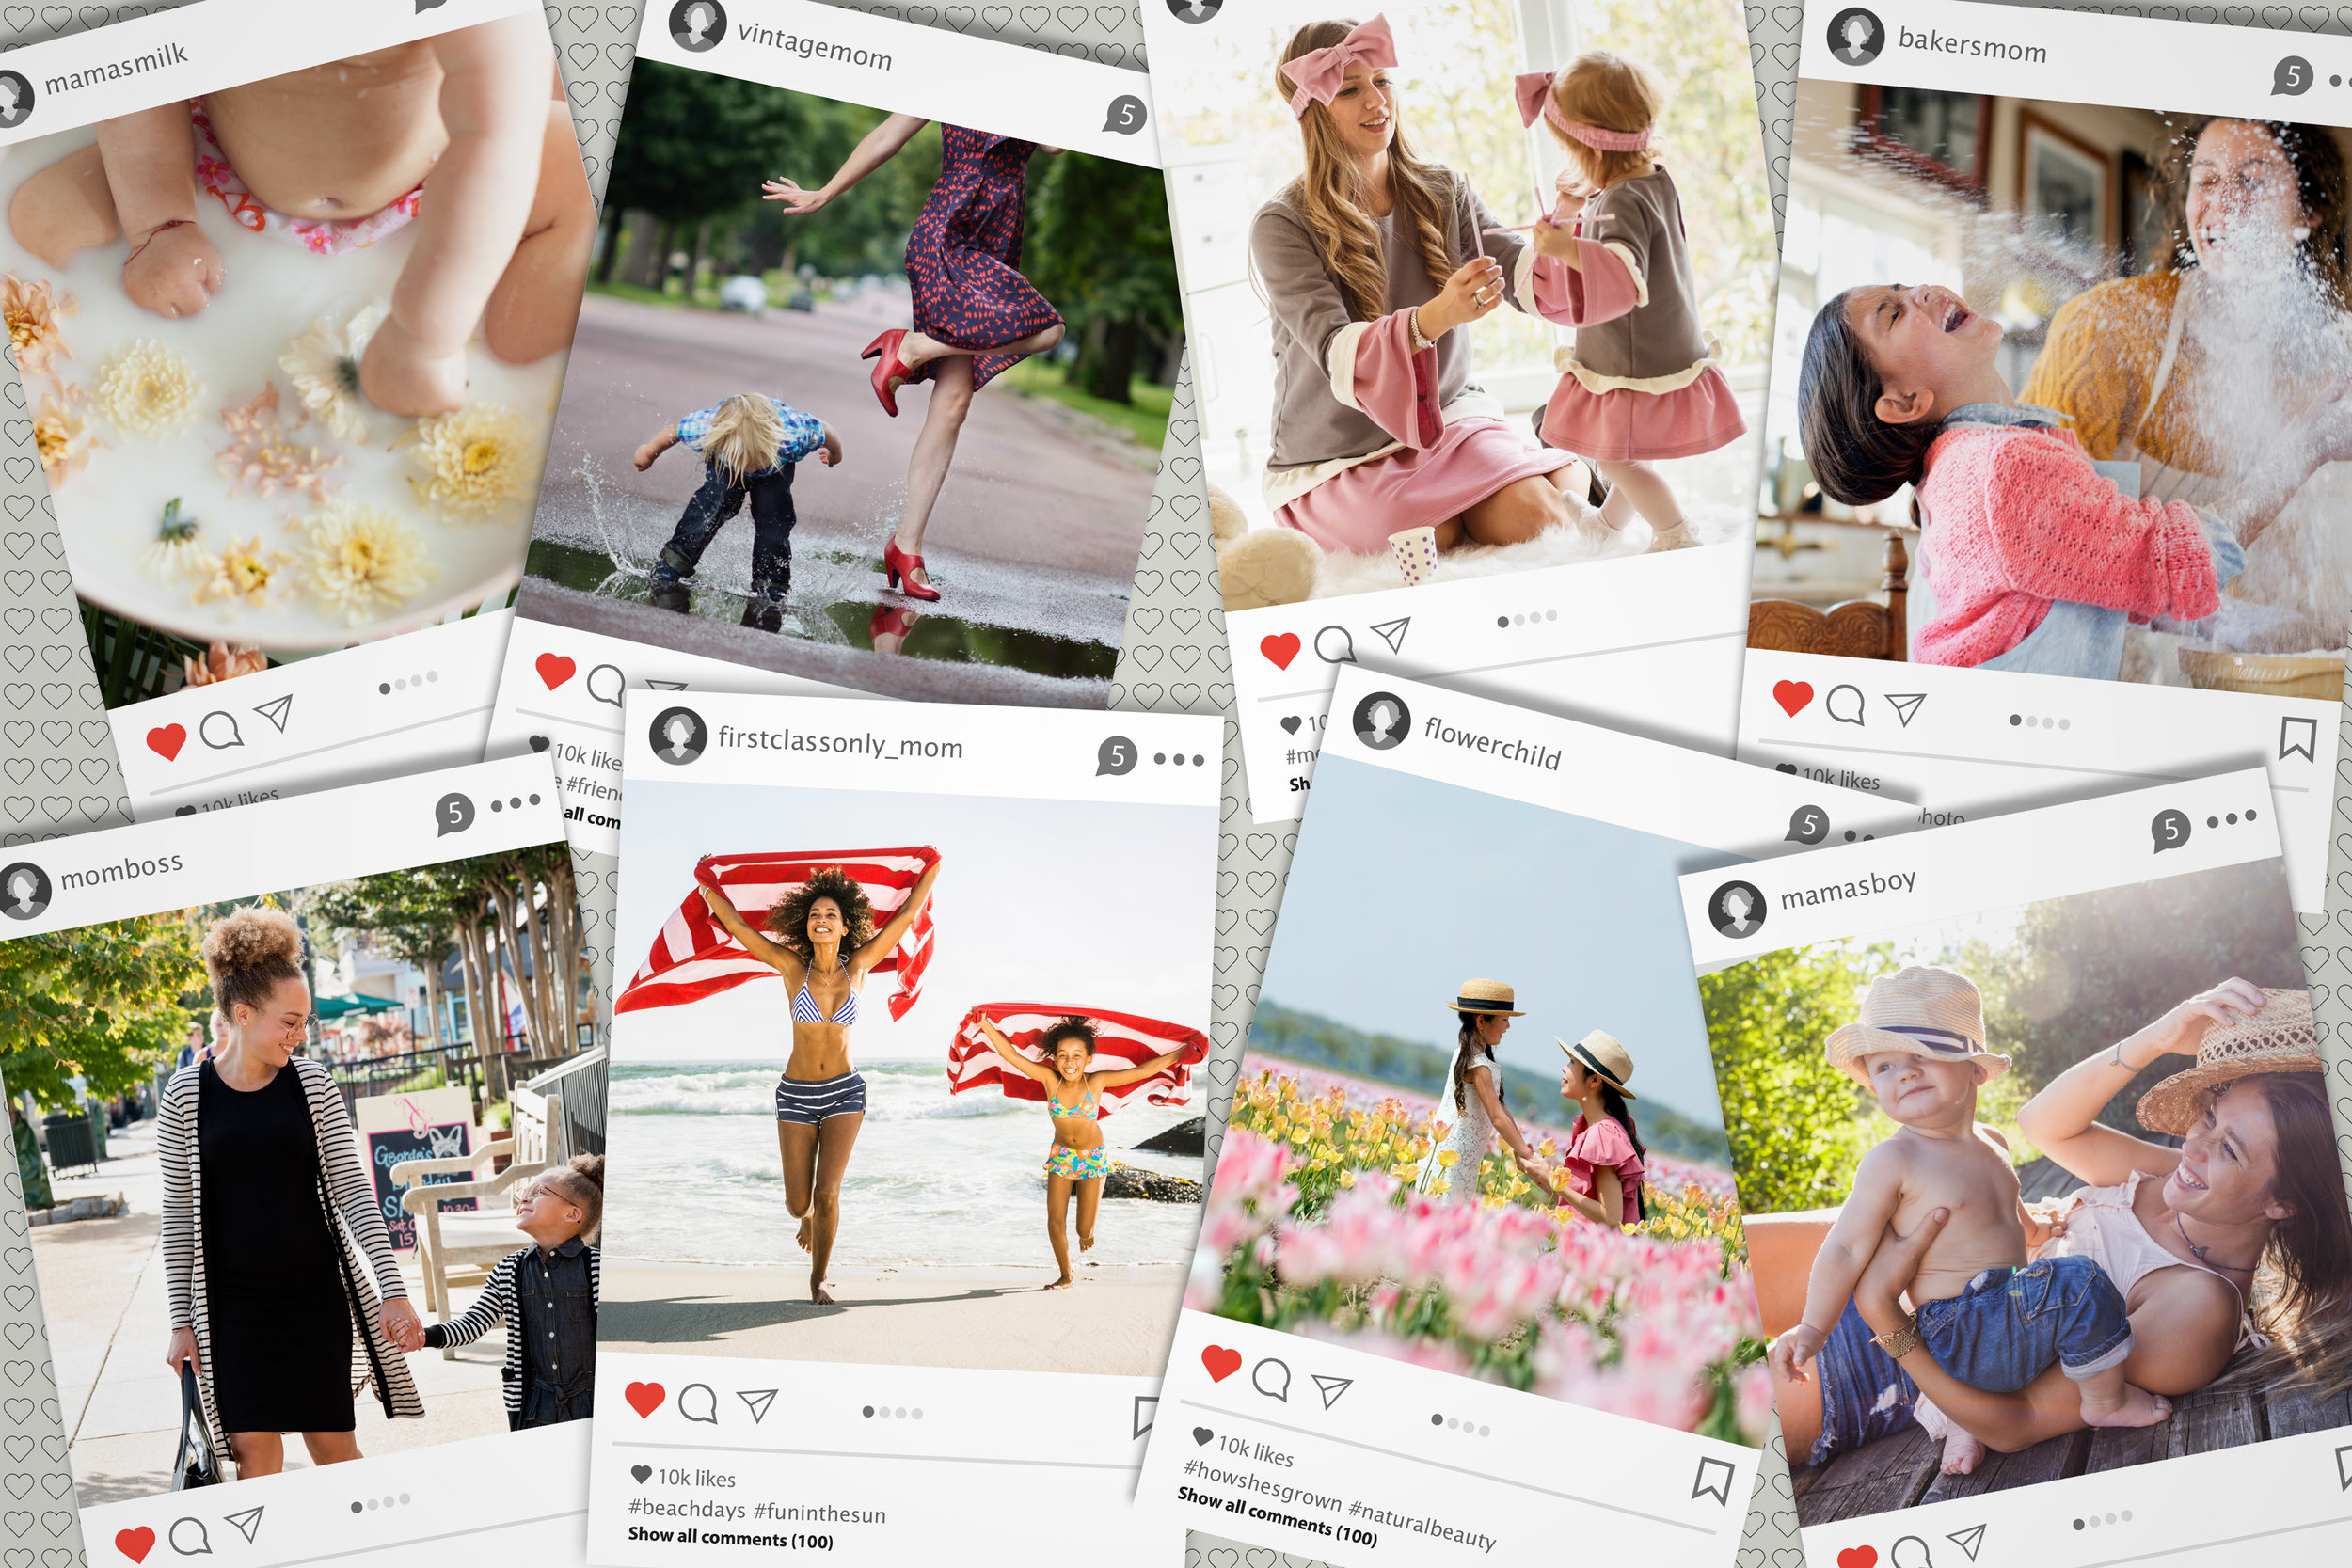 Instagram Moms Are on a Quest for Wealth and Fame — But at What Cost?